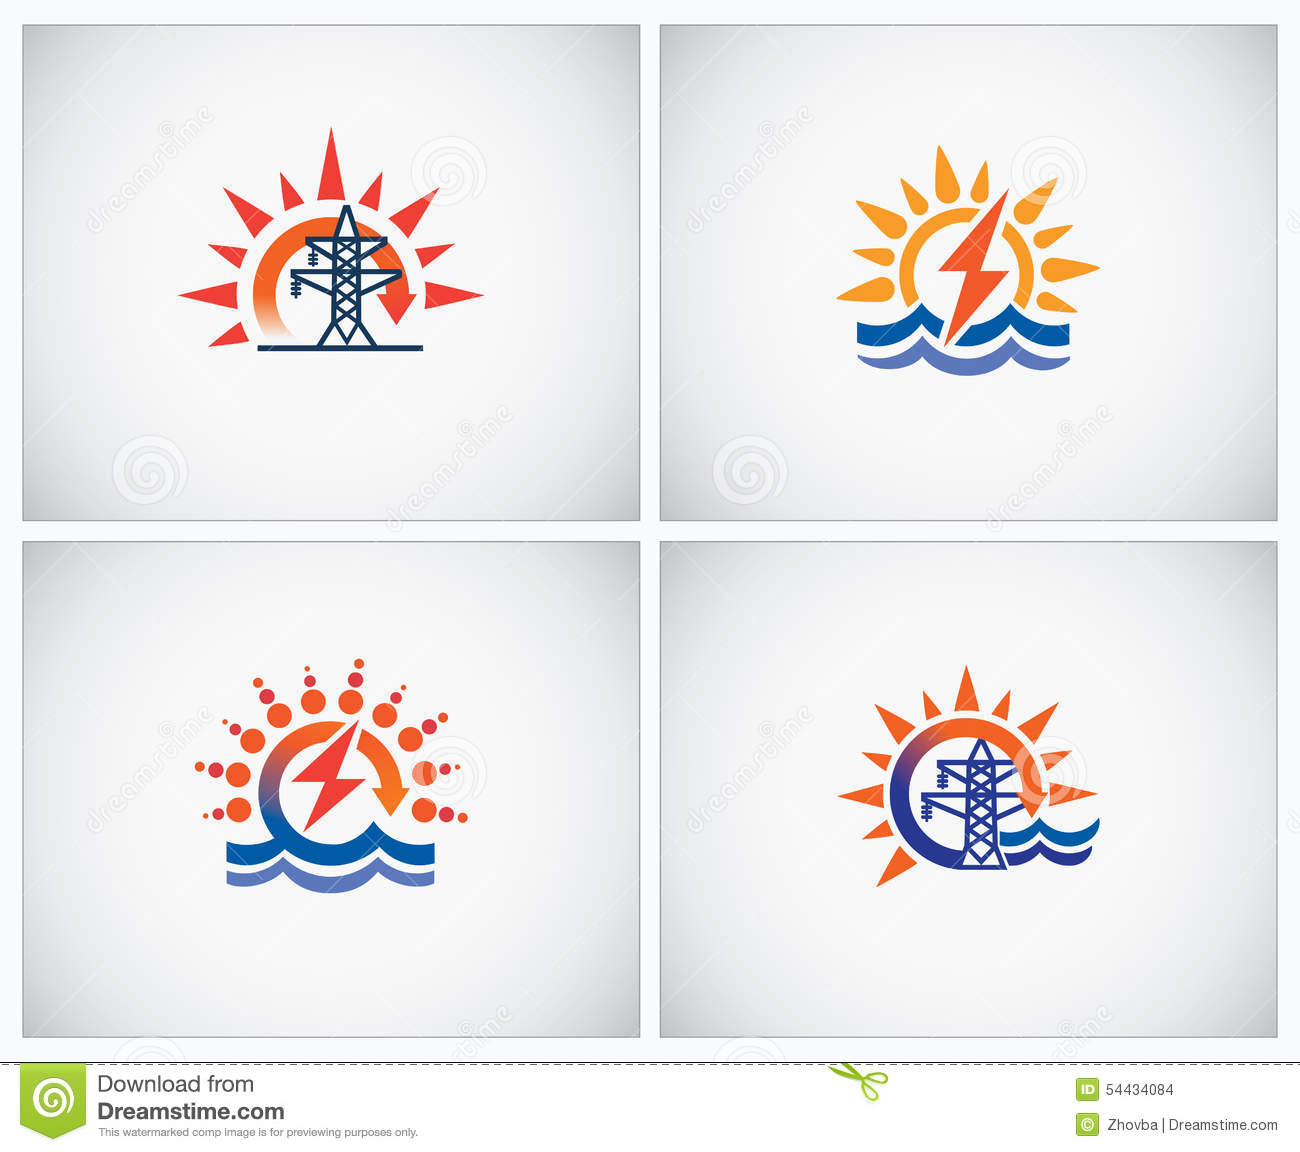 Element of Water Symbolism and Meaning